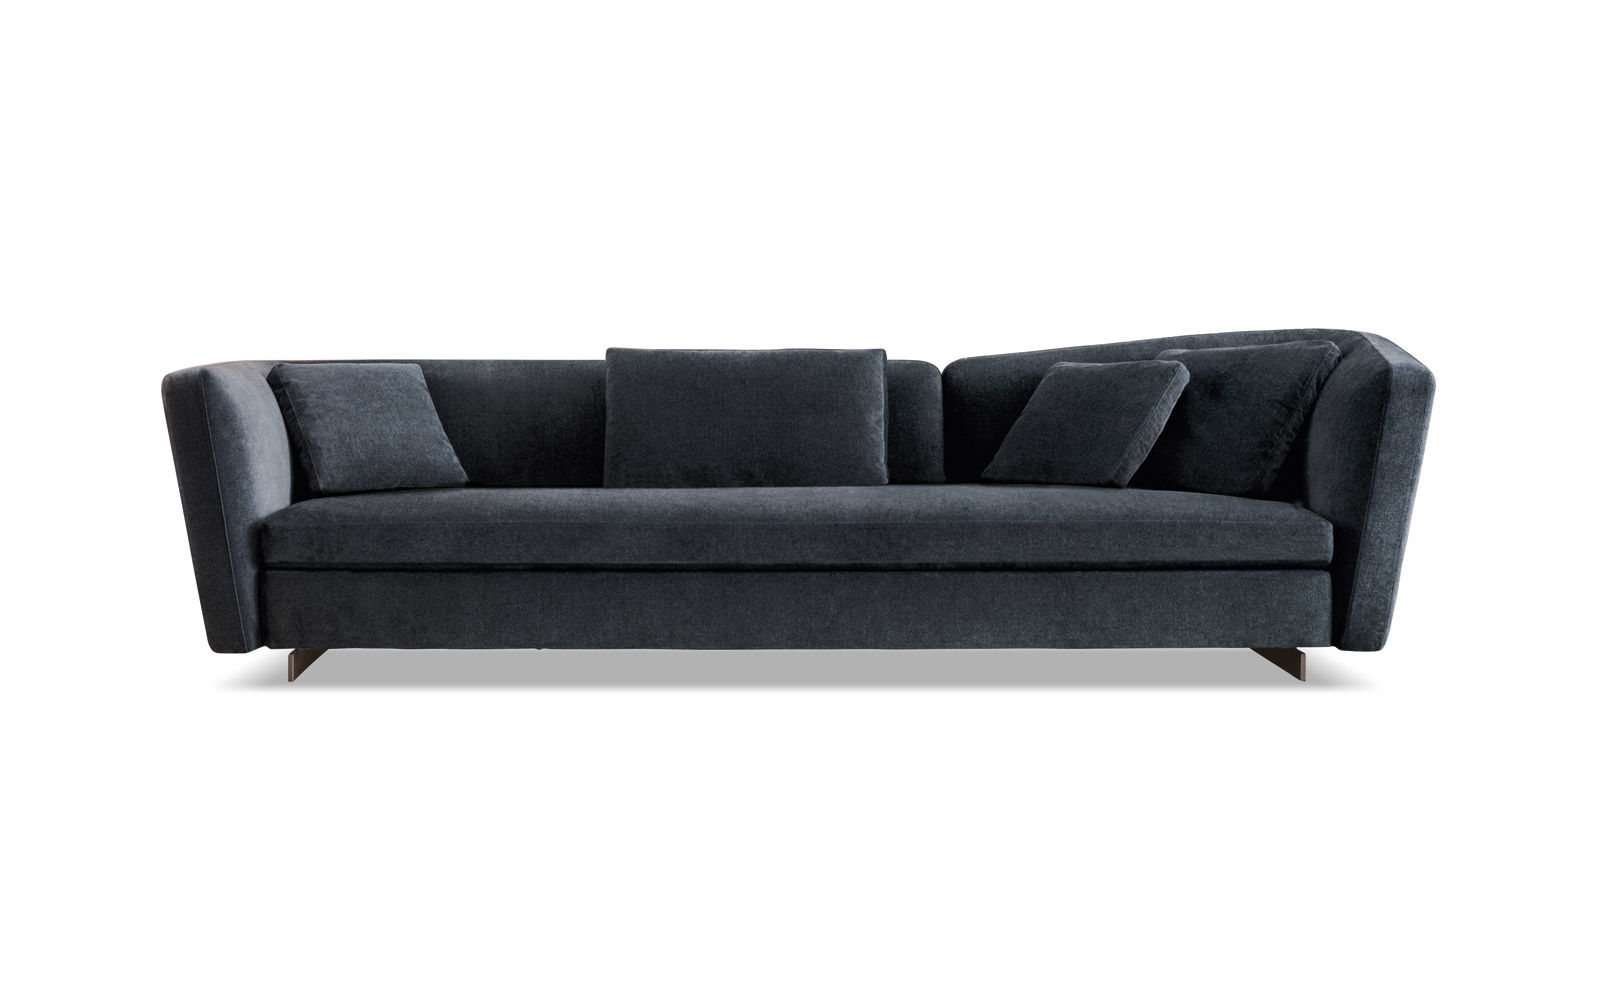 sofa minotti preise minotti leslie with sofa minotti preise bed lawrence bed by minotti with. Black Bedroom Furniture Sets. Home Design Ideas